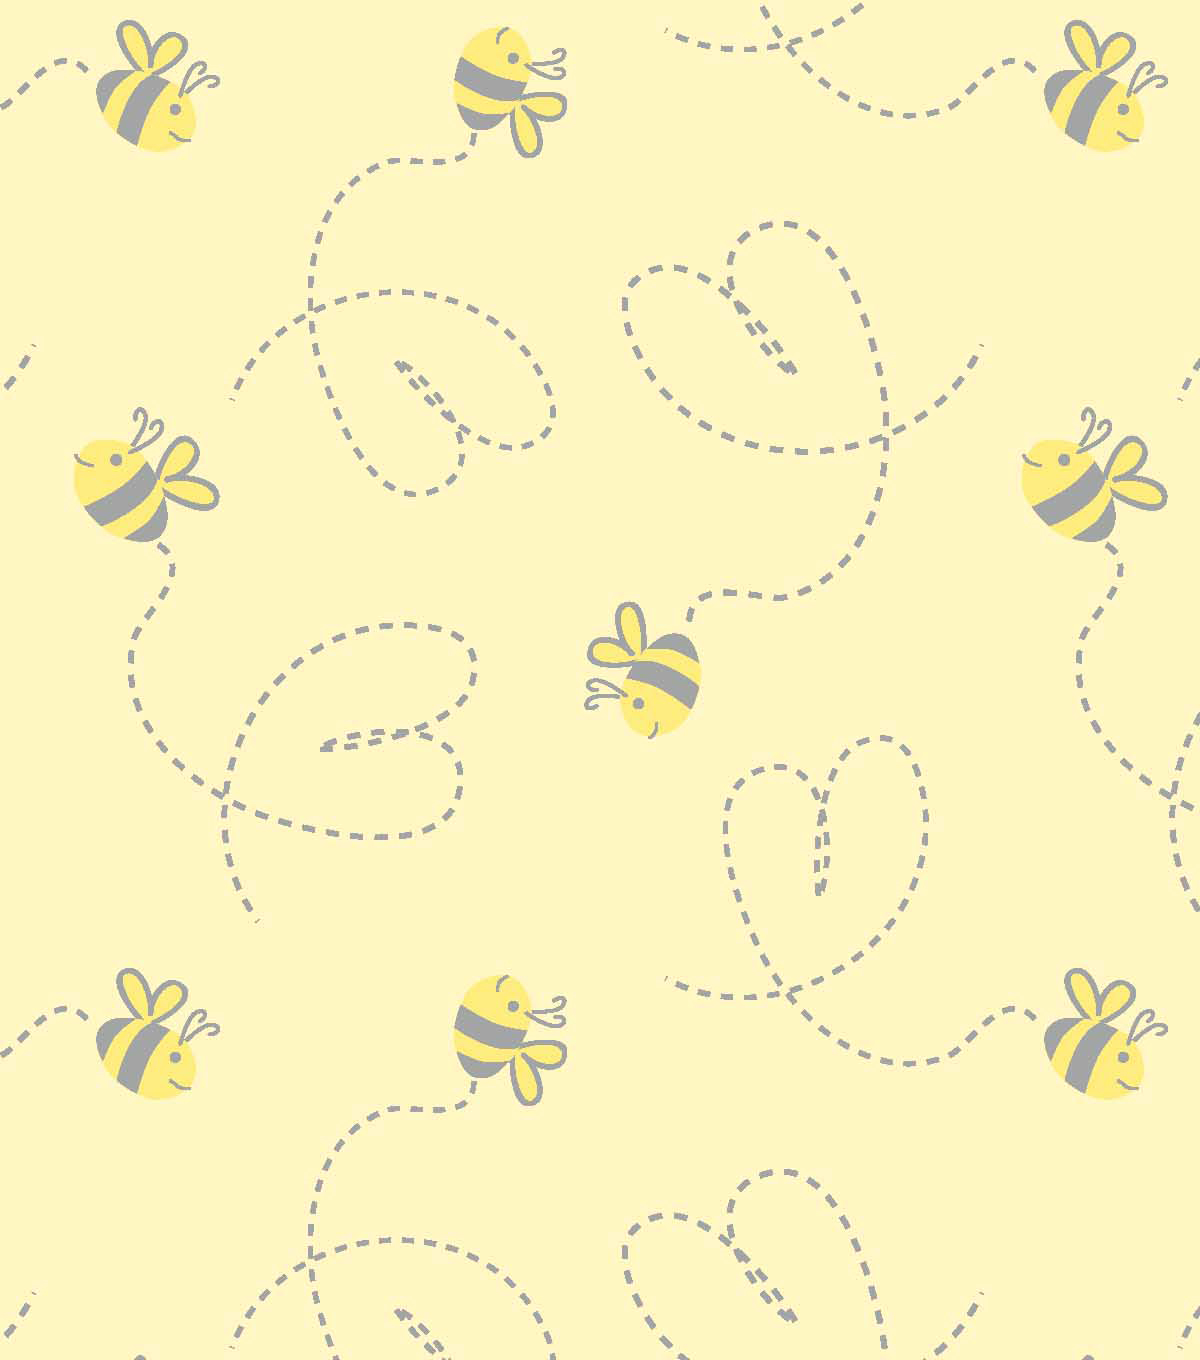 Yellow Gray Printed Nursery Fabric 42\'\'-Tossed Bumblebees | JOANN